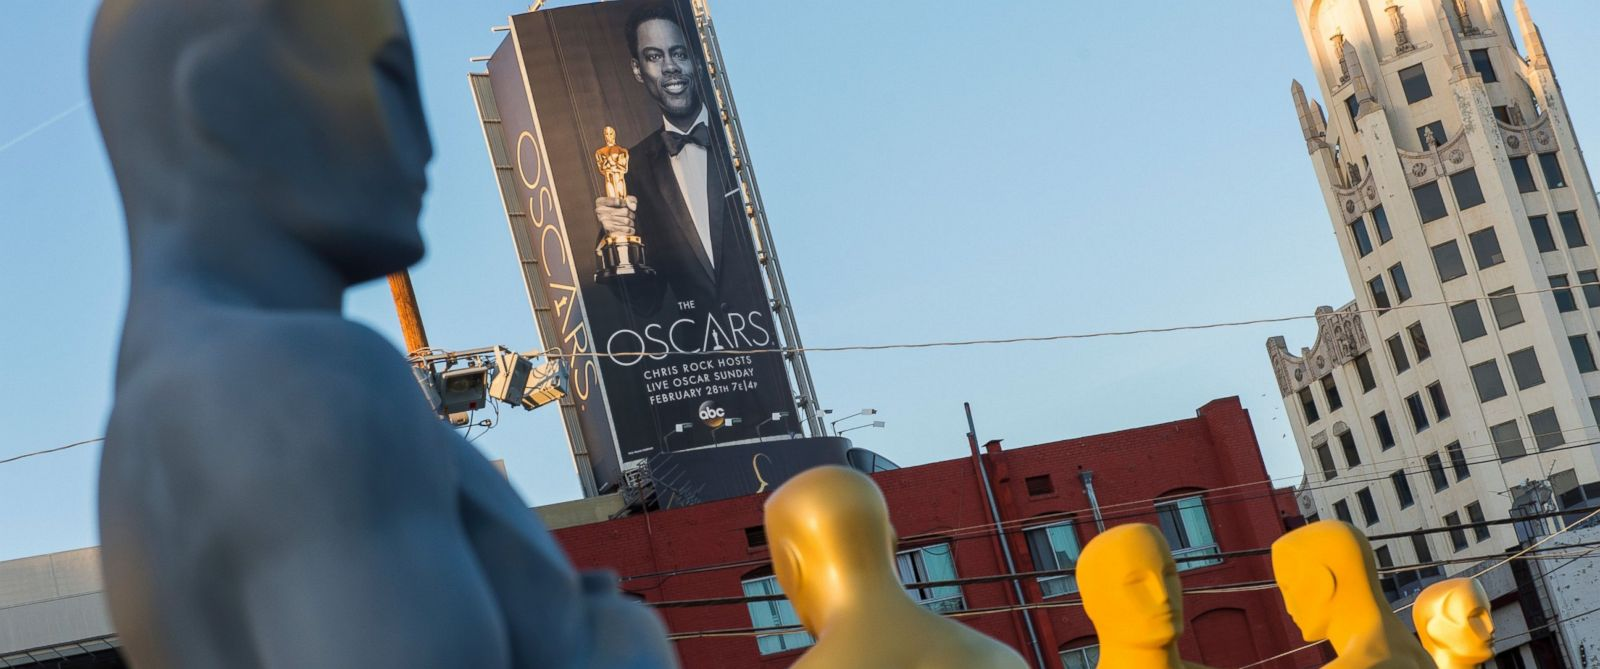 PHOTO: Oscar statuettes are seen as workers make preparations for the 88th Annual Academy Awards at Hollywood & Highland Center, Hollywood, California, on Feb. 24, 2016.